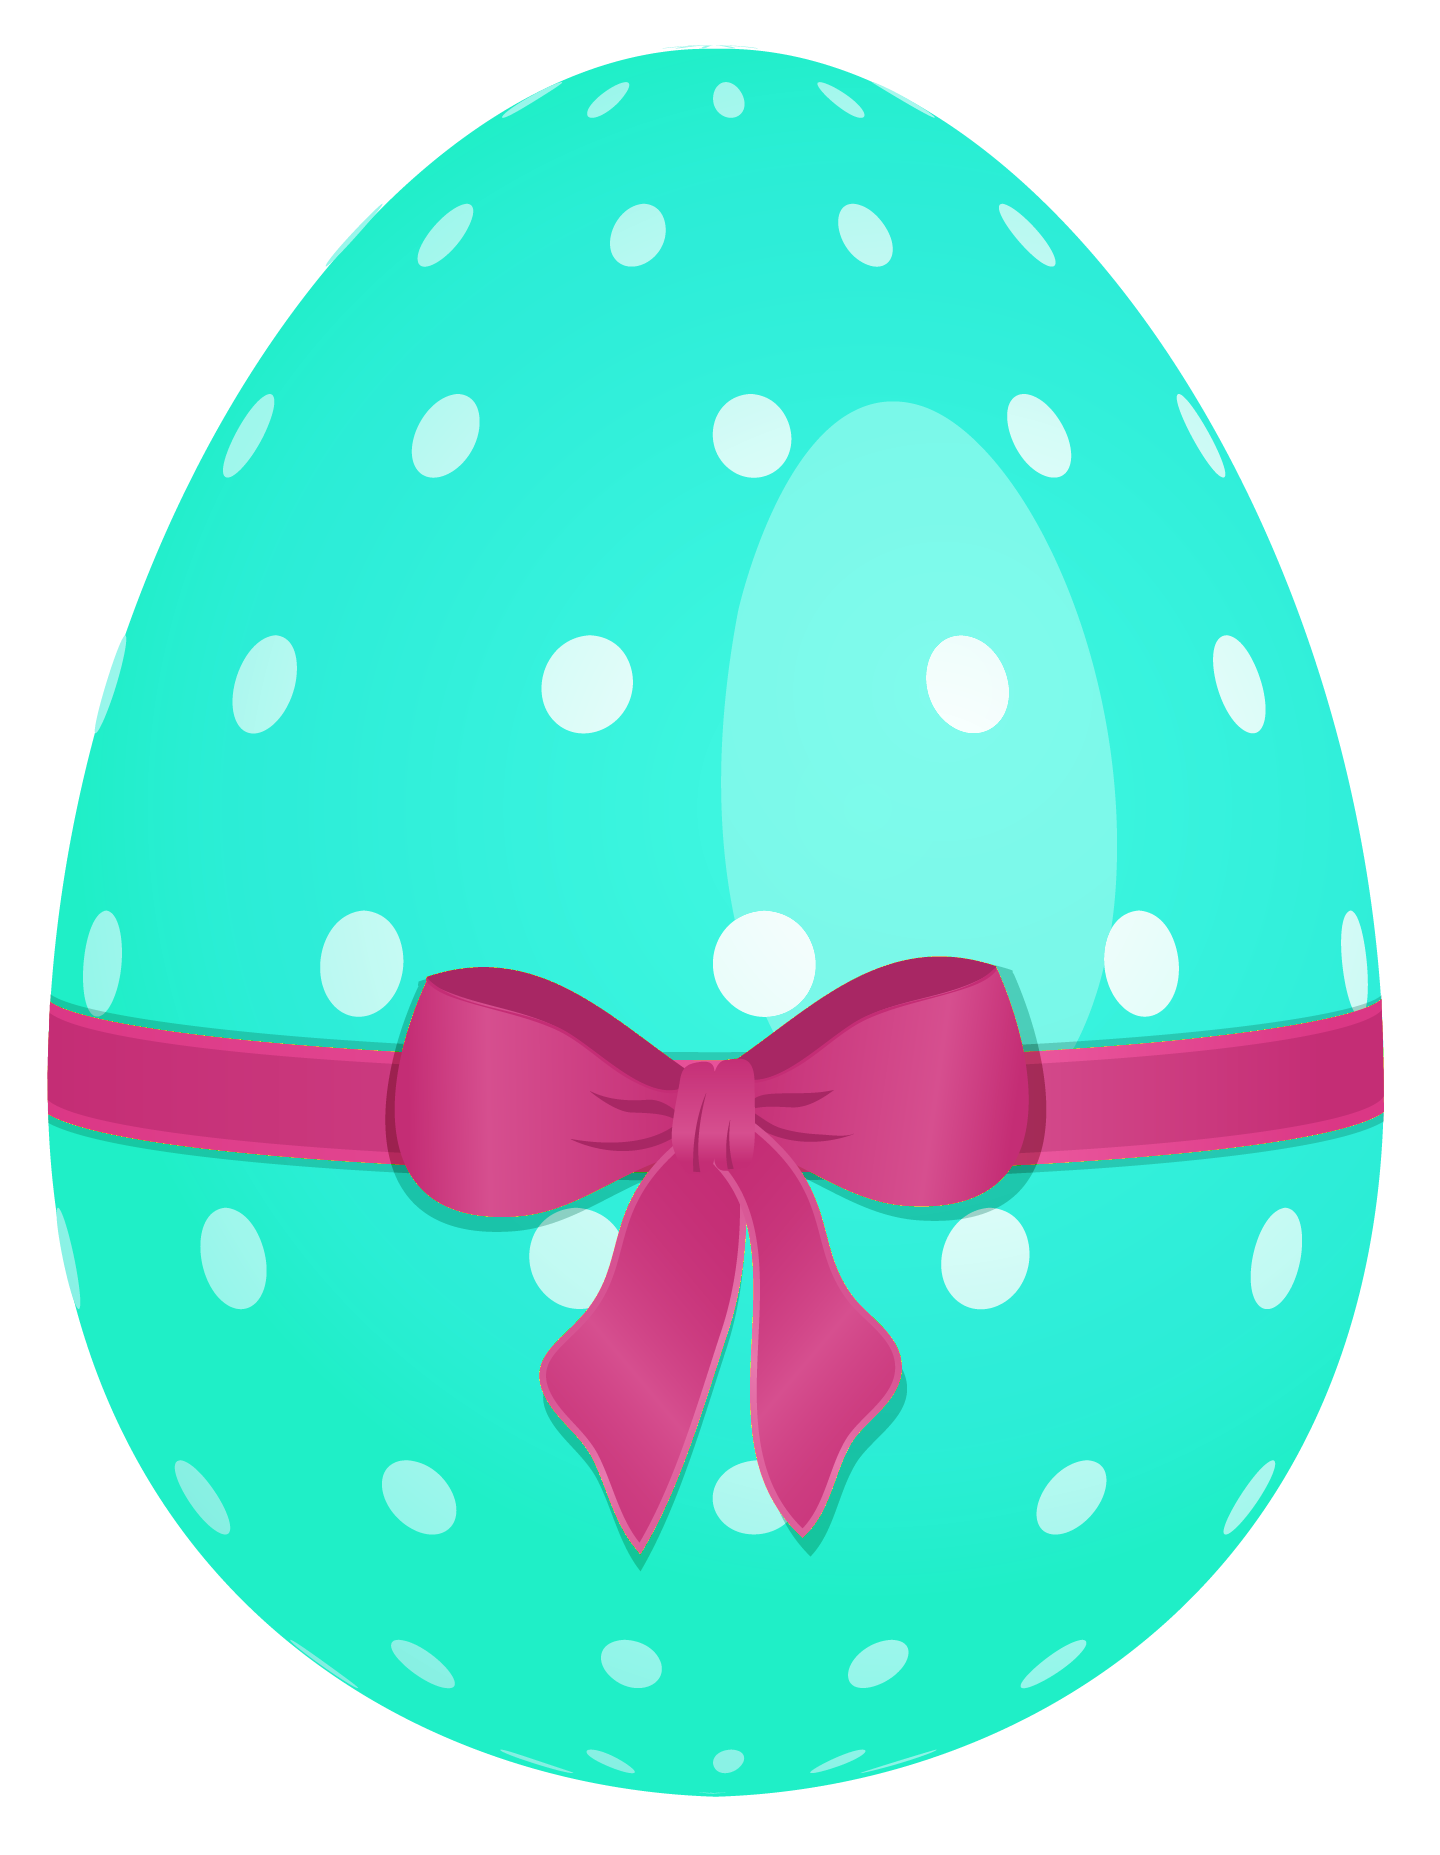 Easter Eggs, Blog Designs And .-Easter eggs, Blog designs and .-7